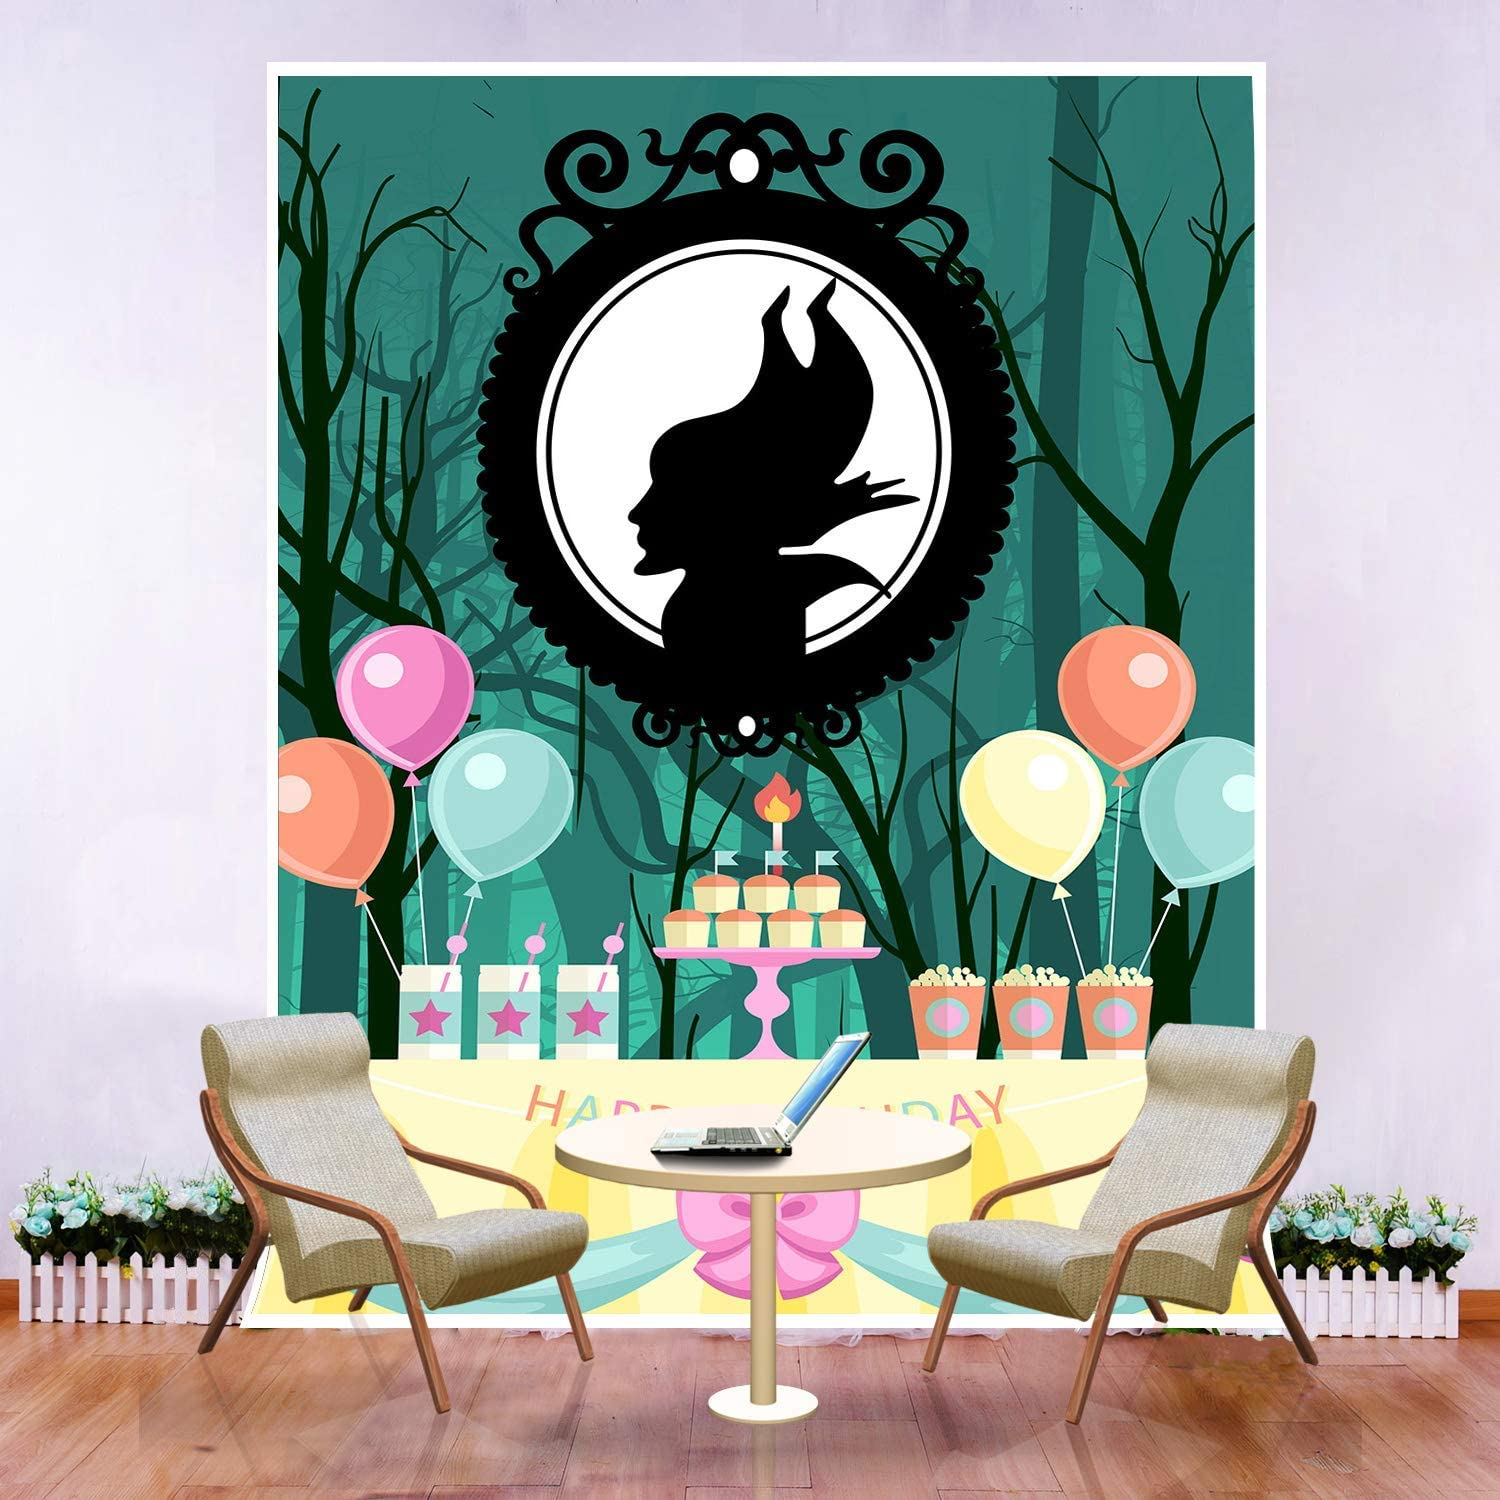 10x8ft Children Maleficent Theme Birthday Backdrop Photography Cake Table Decor Background Photo Props WQFU083